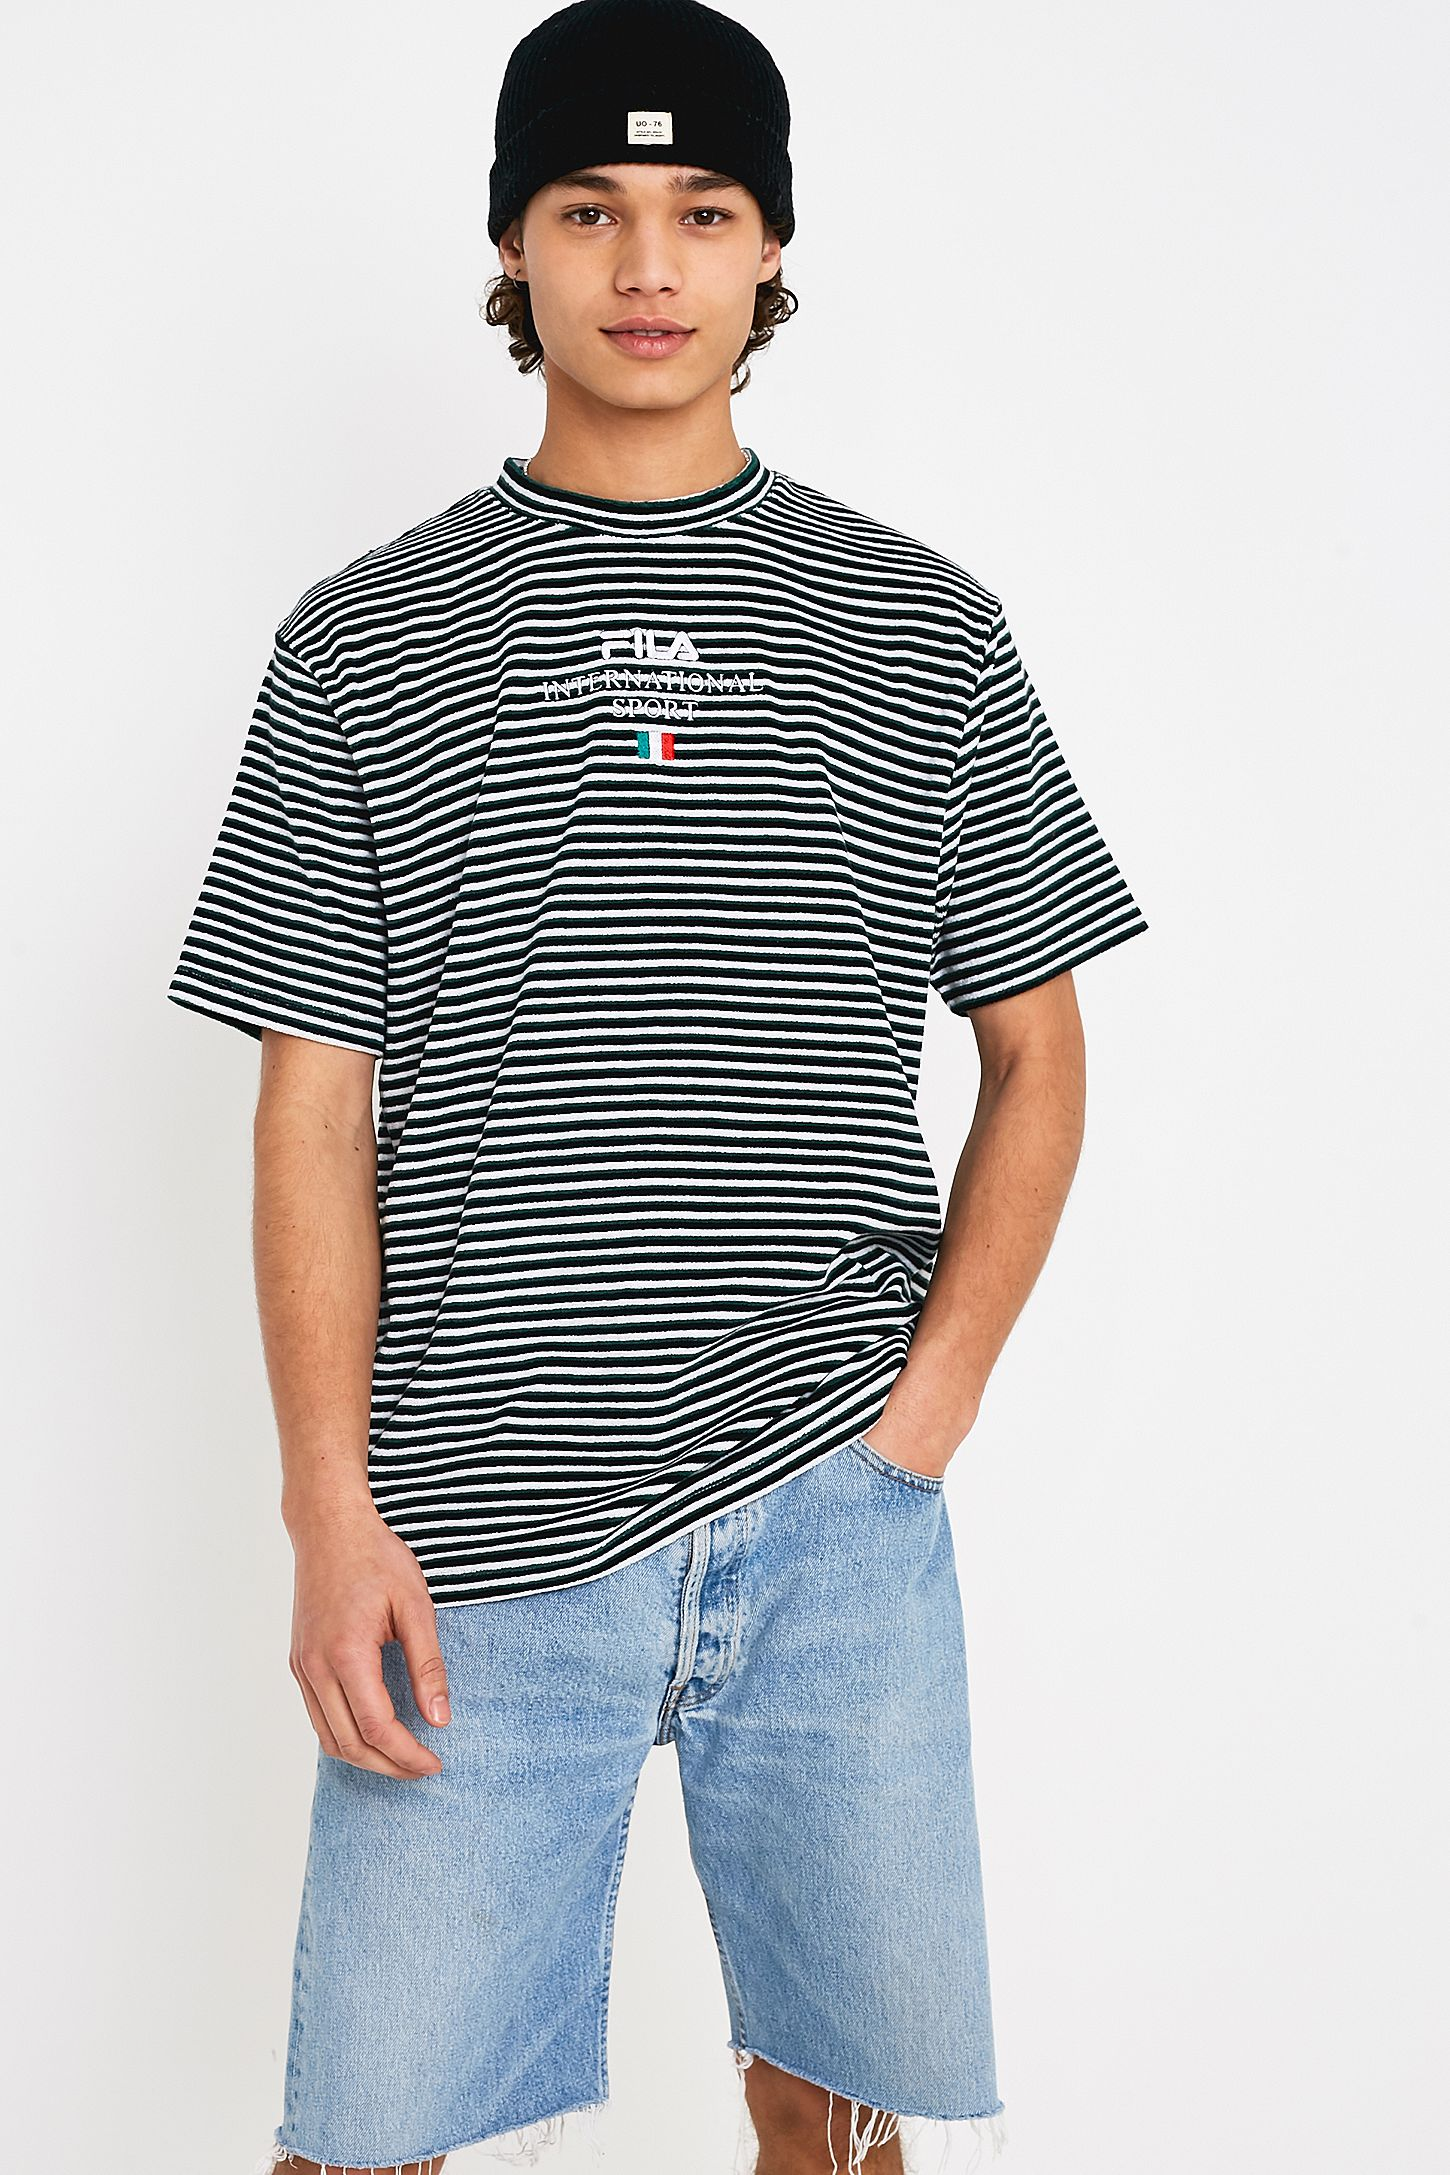 fc169367f2a354 FILA Hill White and Green Striped Towelling T-Shirt. Click on image to  zoom. Hover to zoom. Double Tap to Zoom